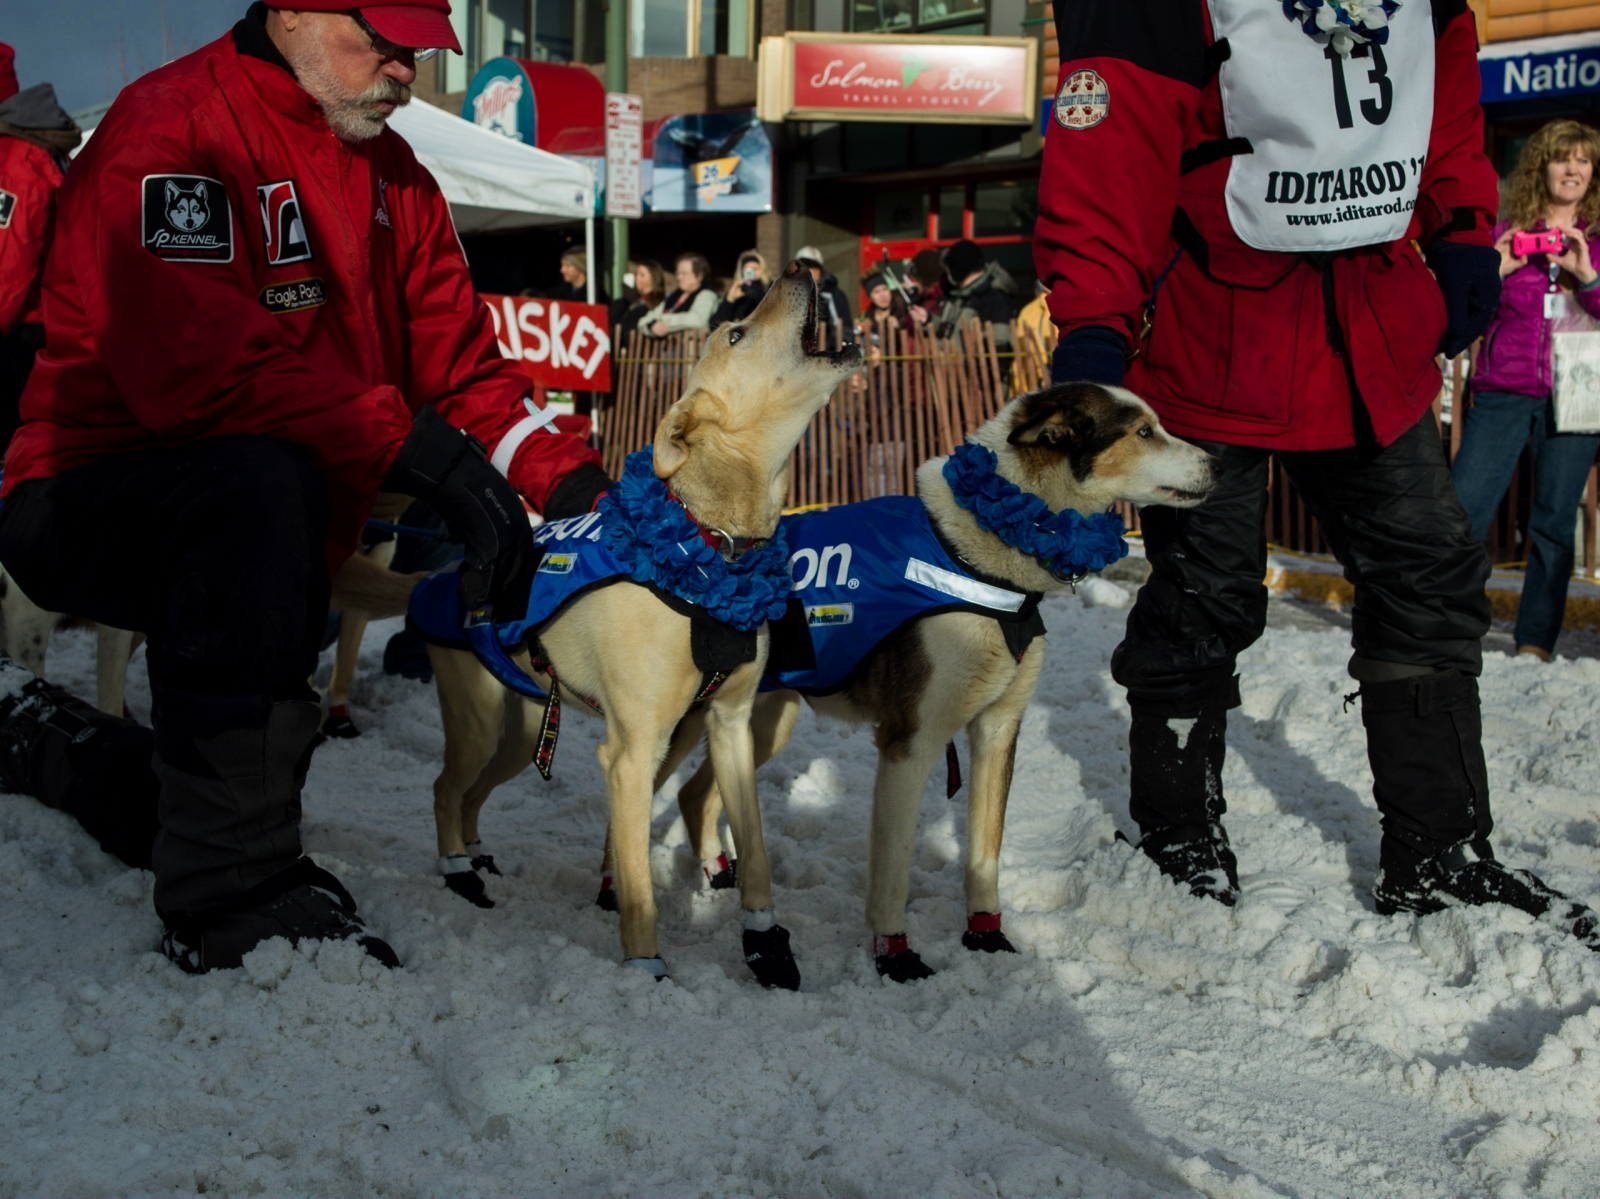 Aily Zirkle pets one of her lead dogs before heading for the start line of the ceremonial Iditarod start in Anchorage on March 5, 2016.